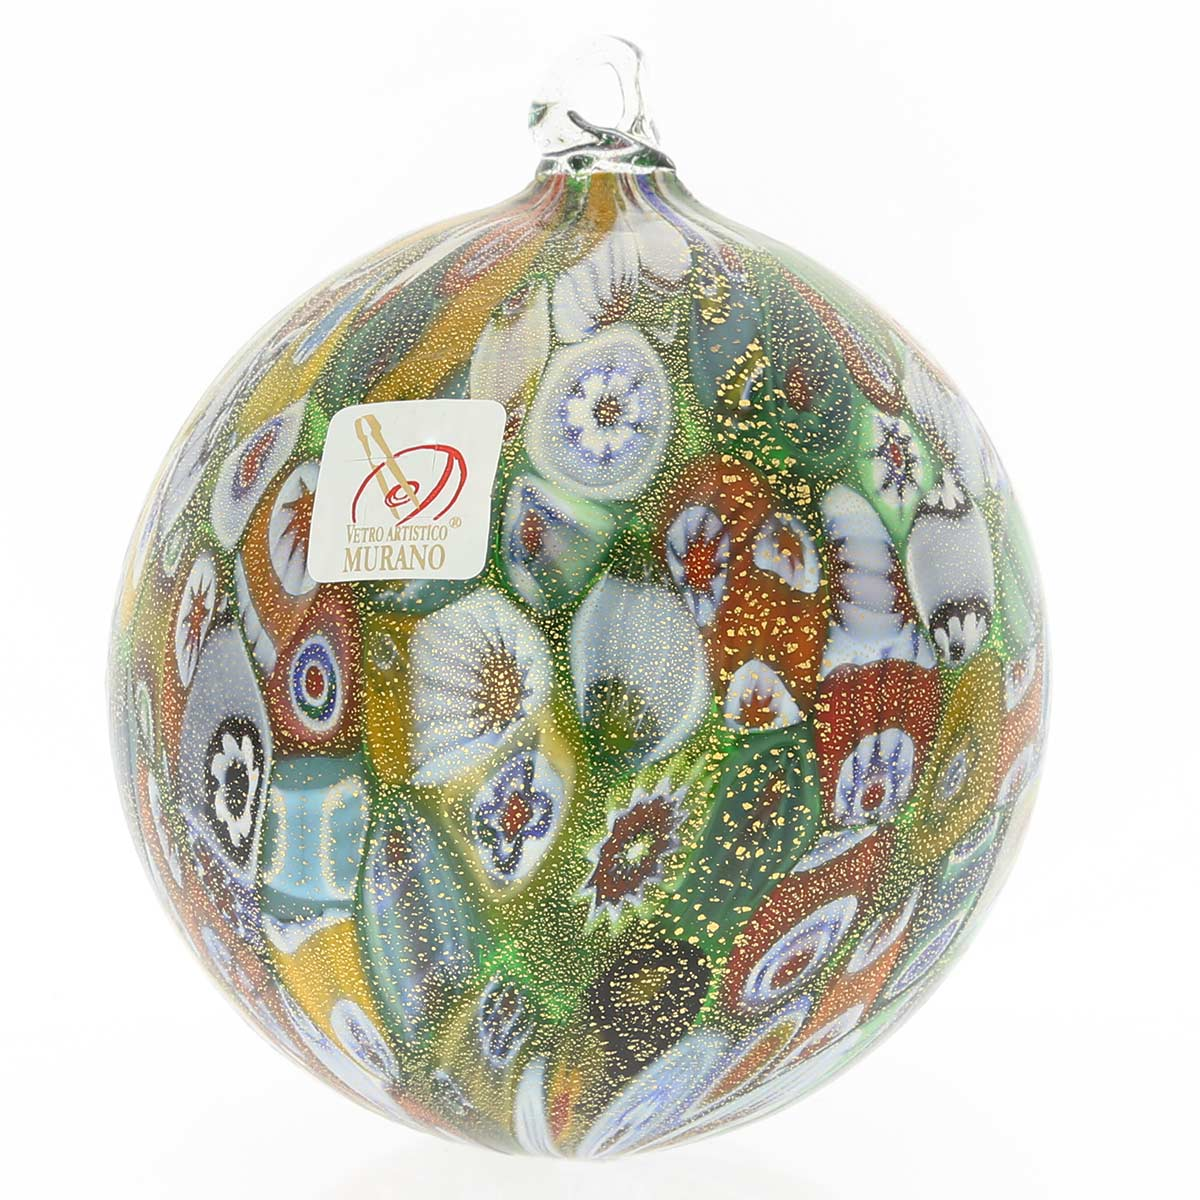 "Pottery & Glass Colorful Fused Art Glass Christmas Ornaments Dessert Plate 9"" New Holiday"